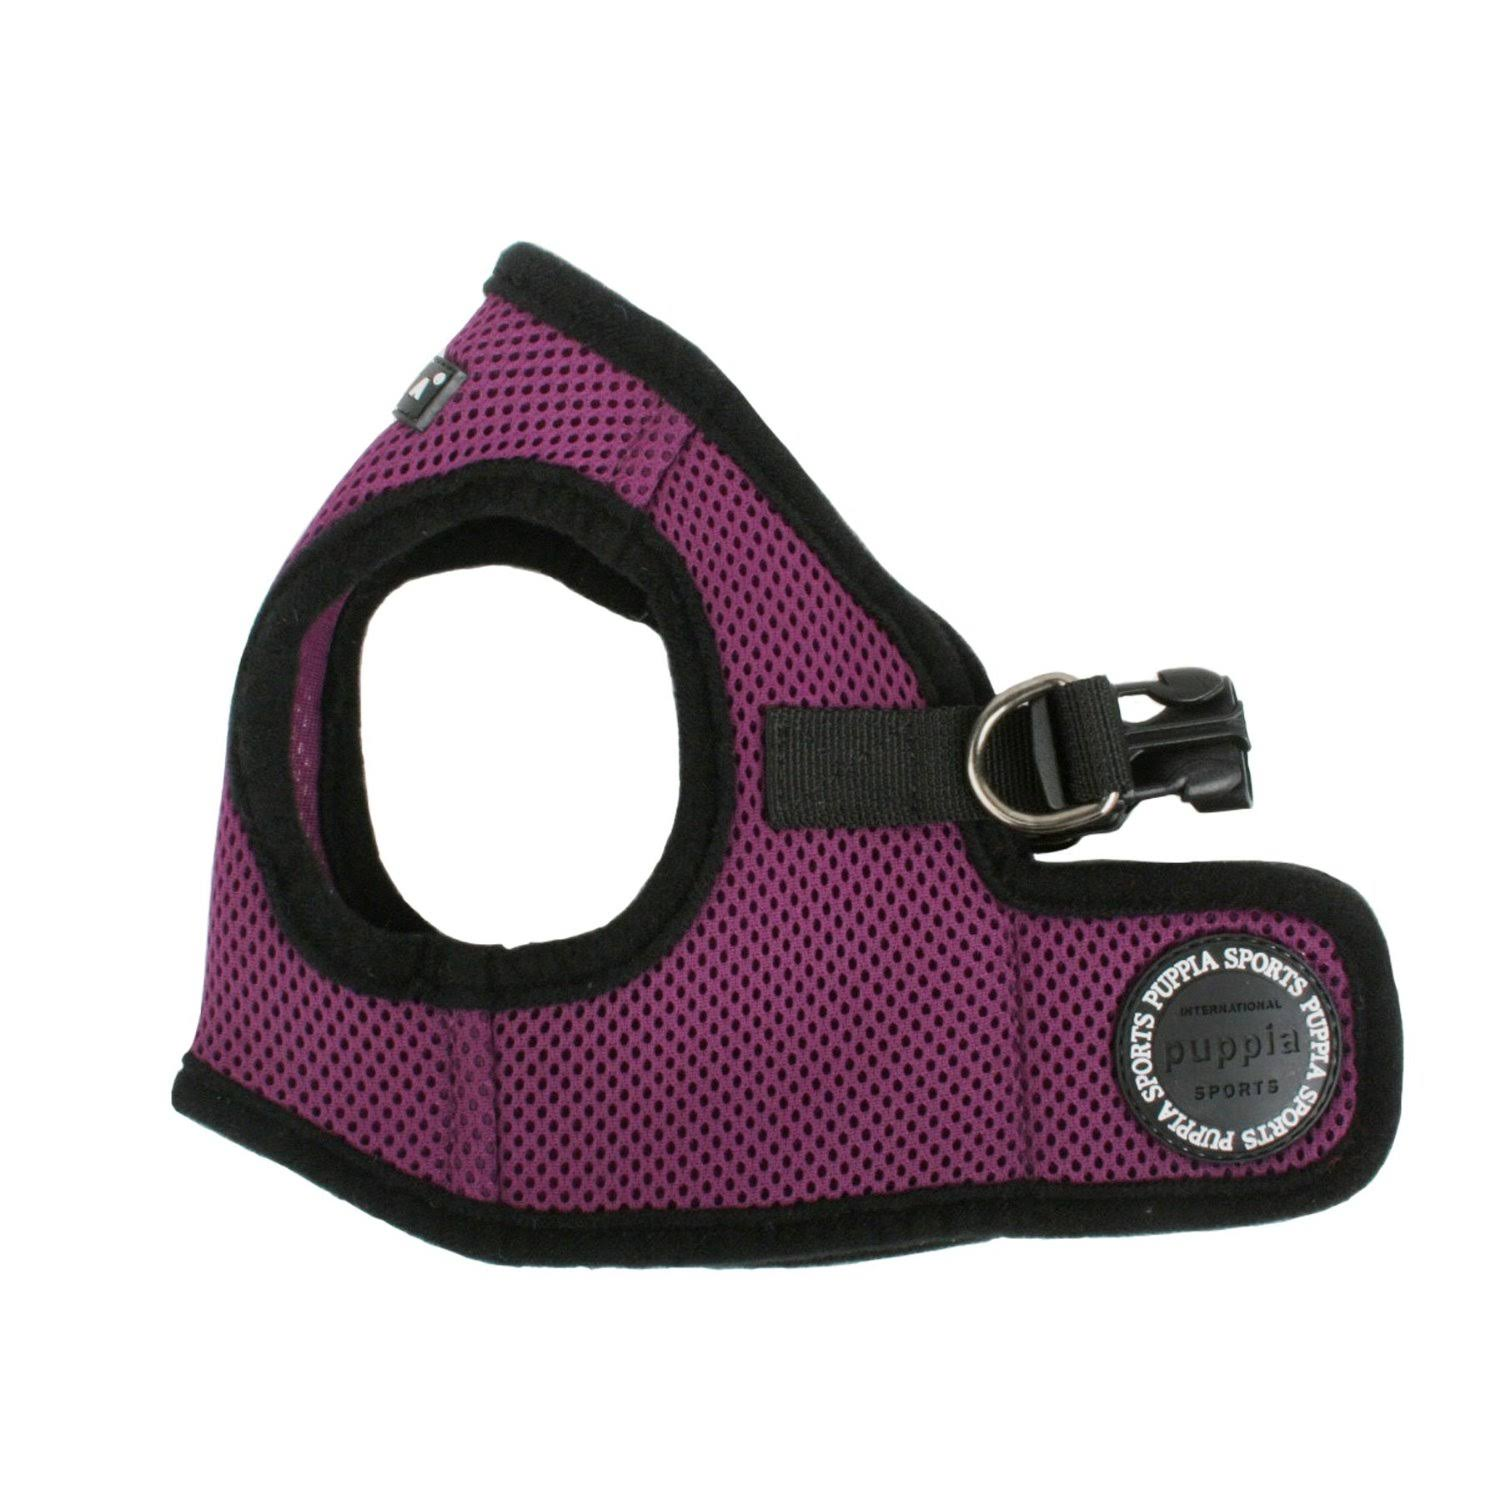 "Puppia Soft Vest Dog Harness - Purple, X-Large, 14"" x 20 to 20-1/5"""